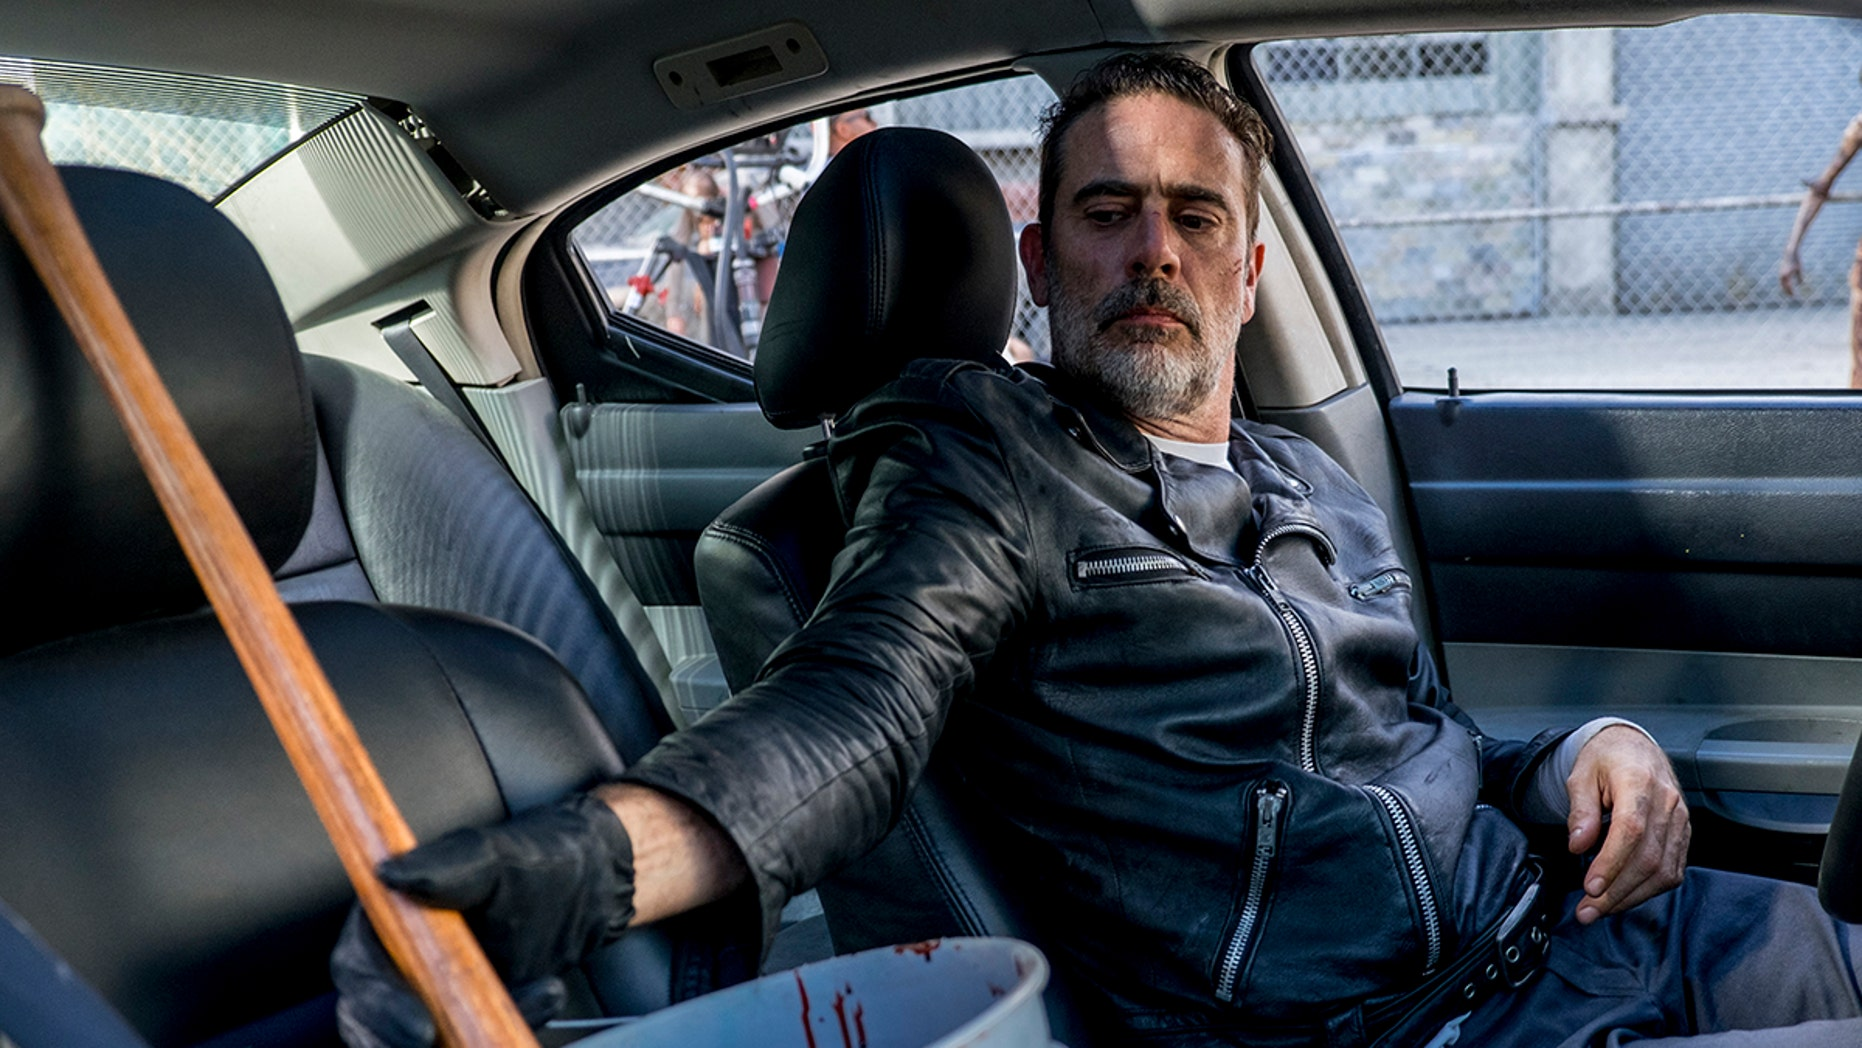 The latest episode picked up right where last week's left off, with a giddy Negan organizing a biological attack on The Hilltop.